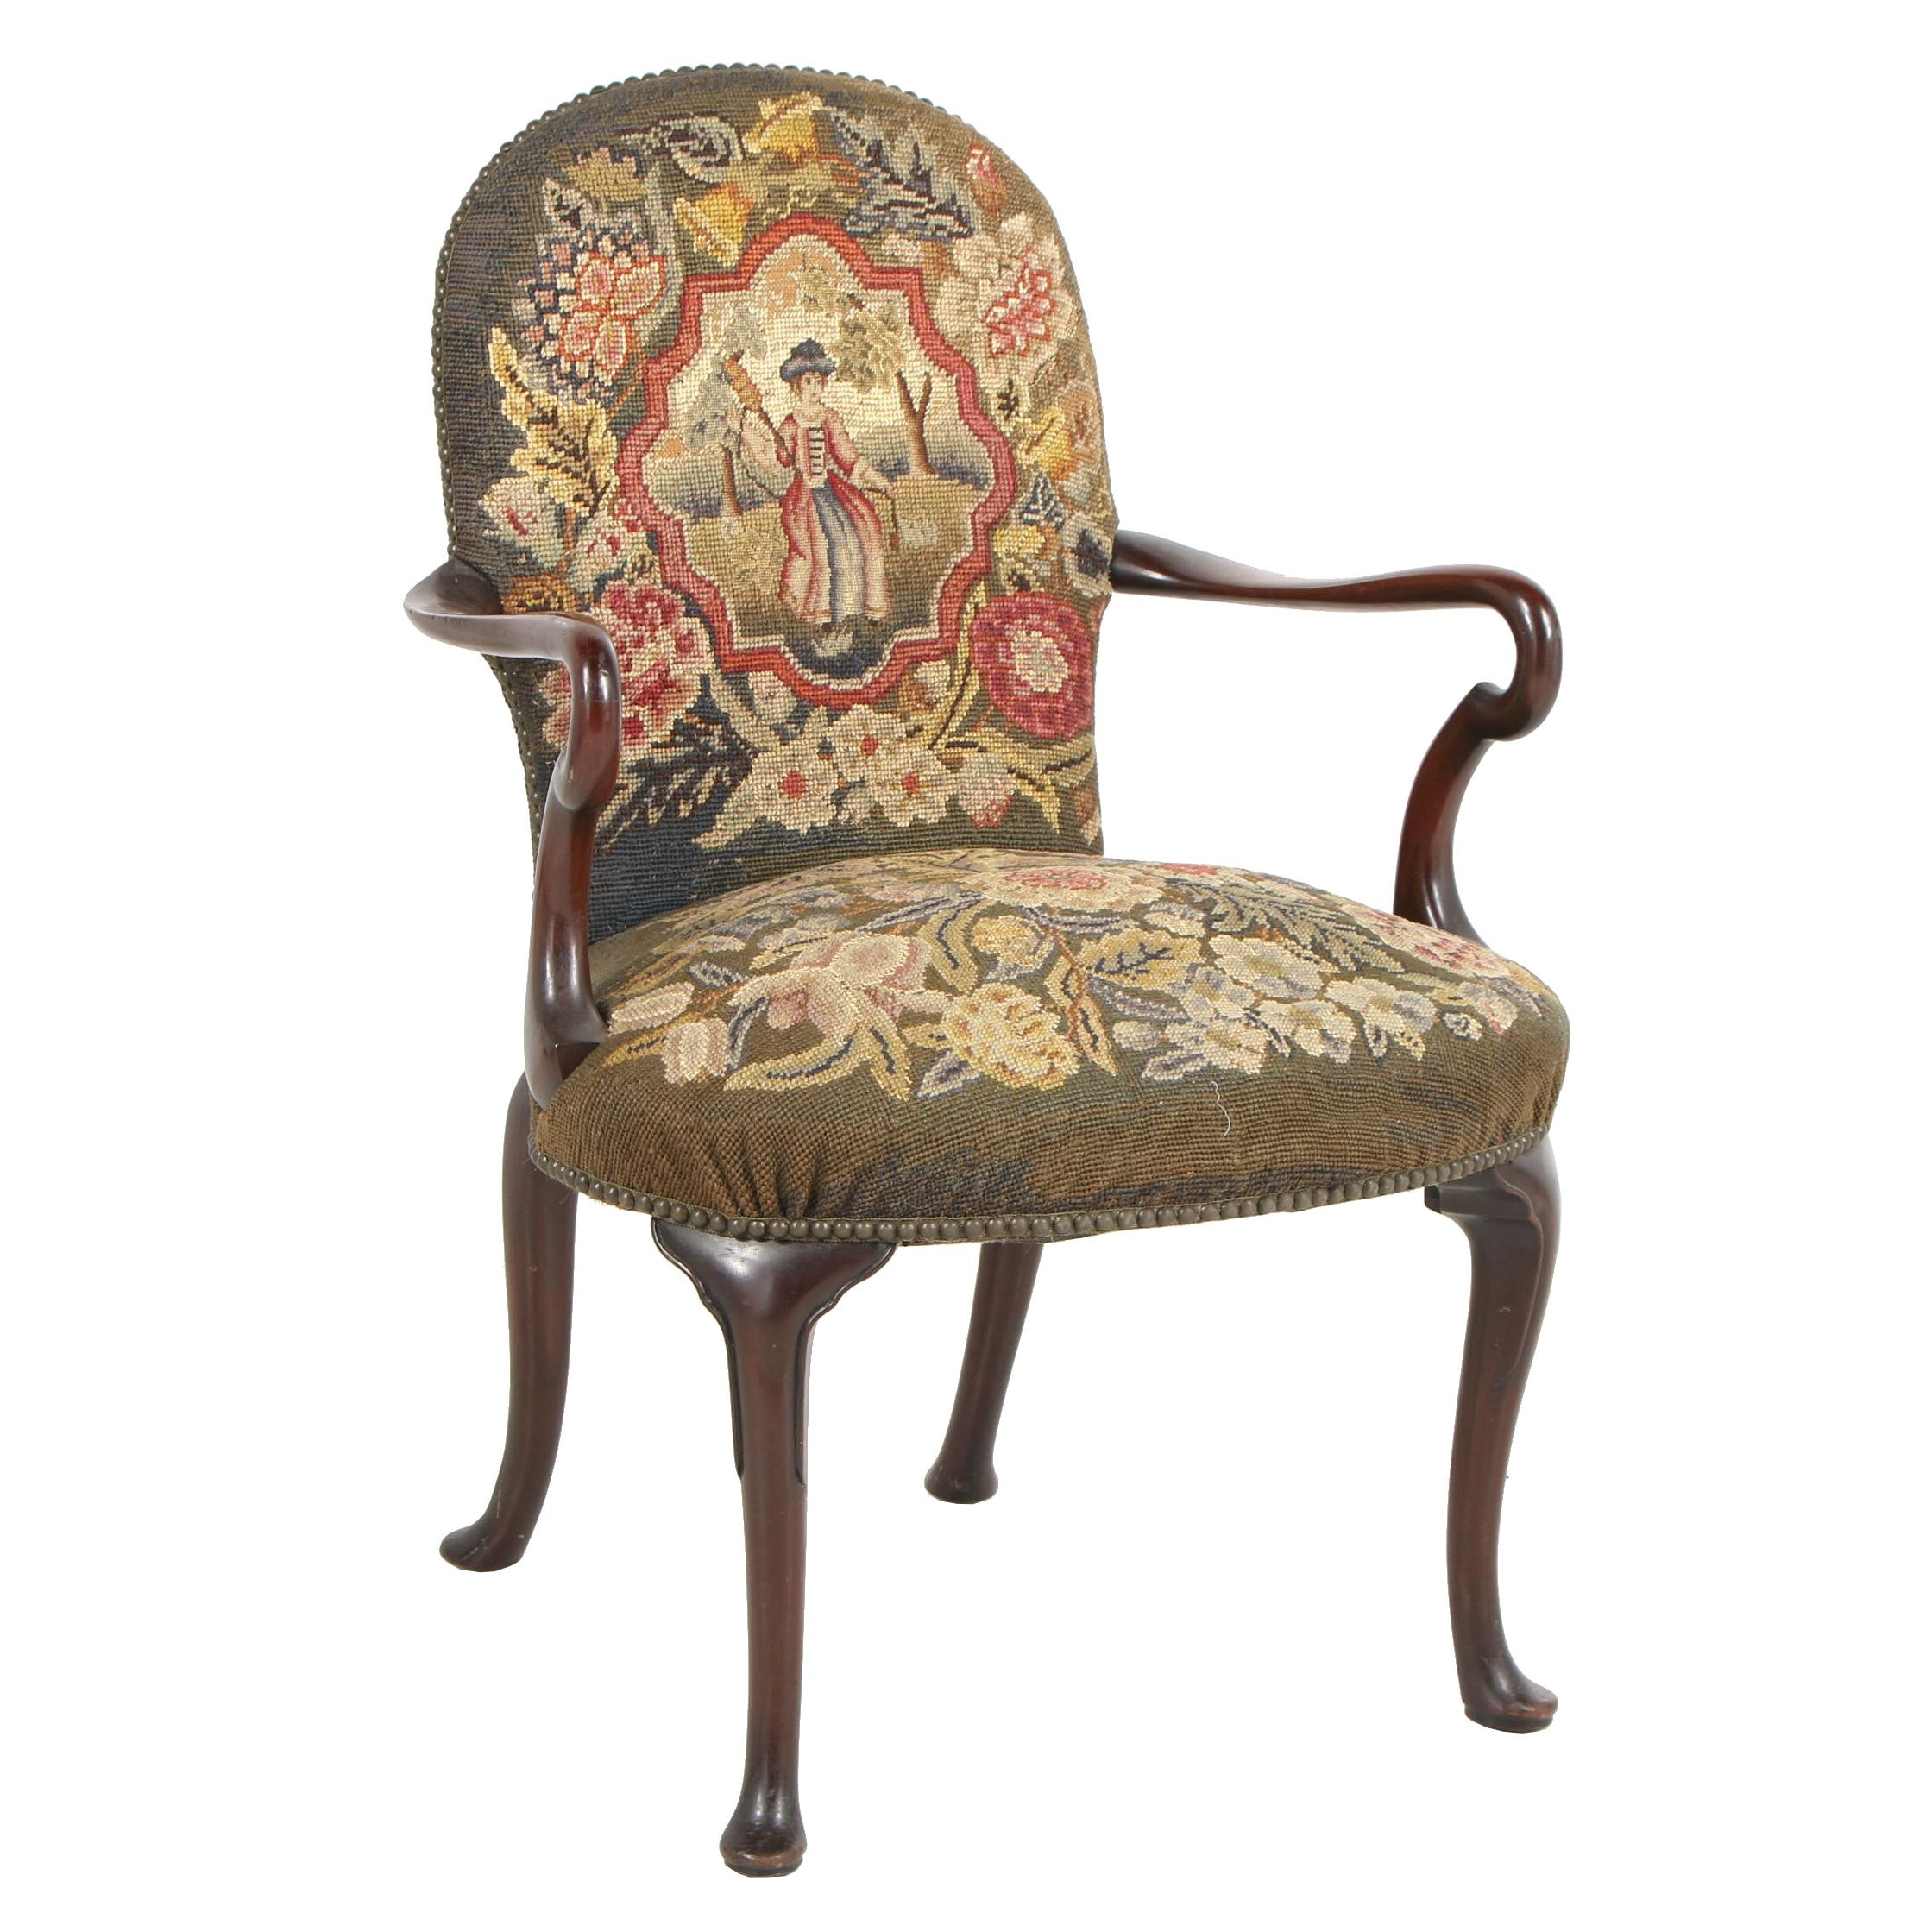 Queen Anne Style Armchair with Pictorial Needlepoint Embroidery, Early 20th c.